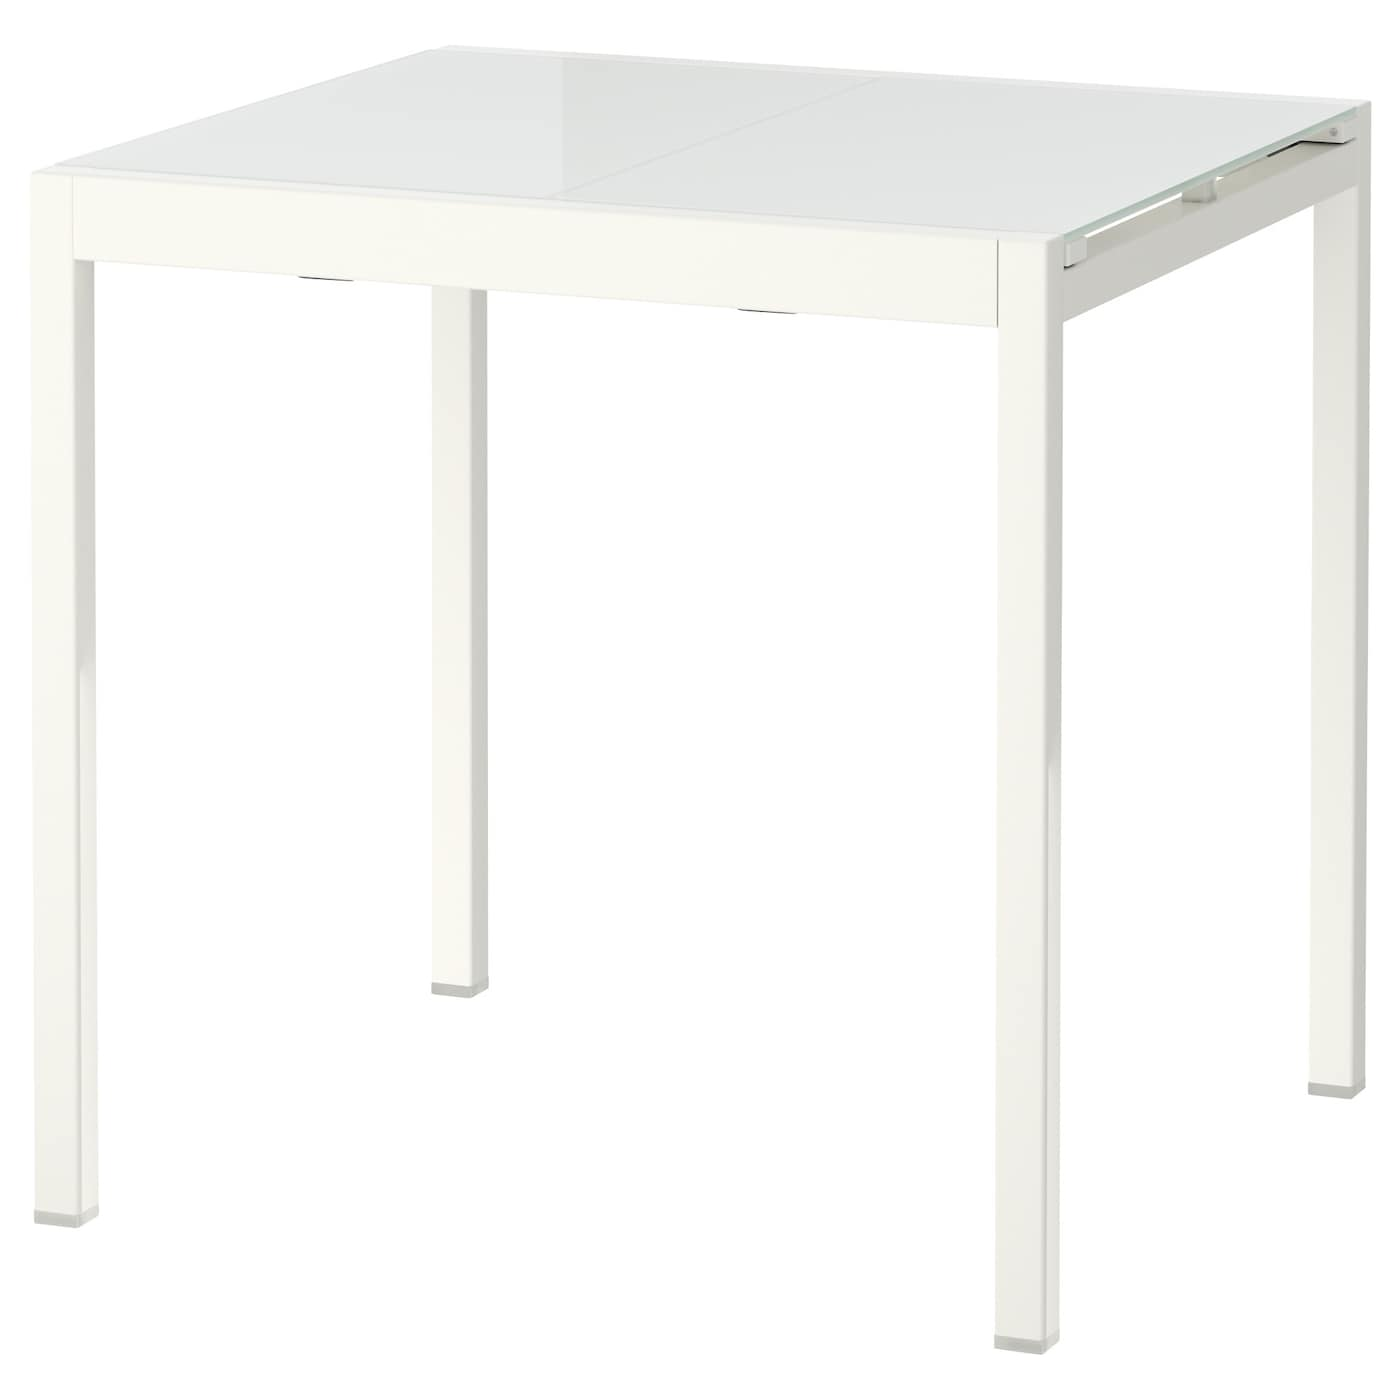 Glivarp extendable table white 75 115x70 cm ikea for Table ikea blanche